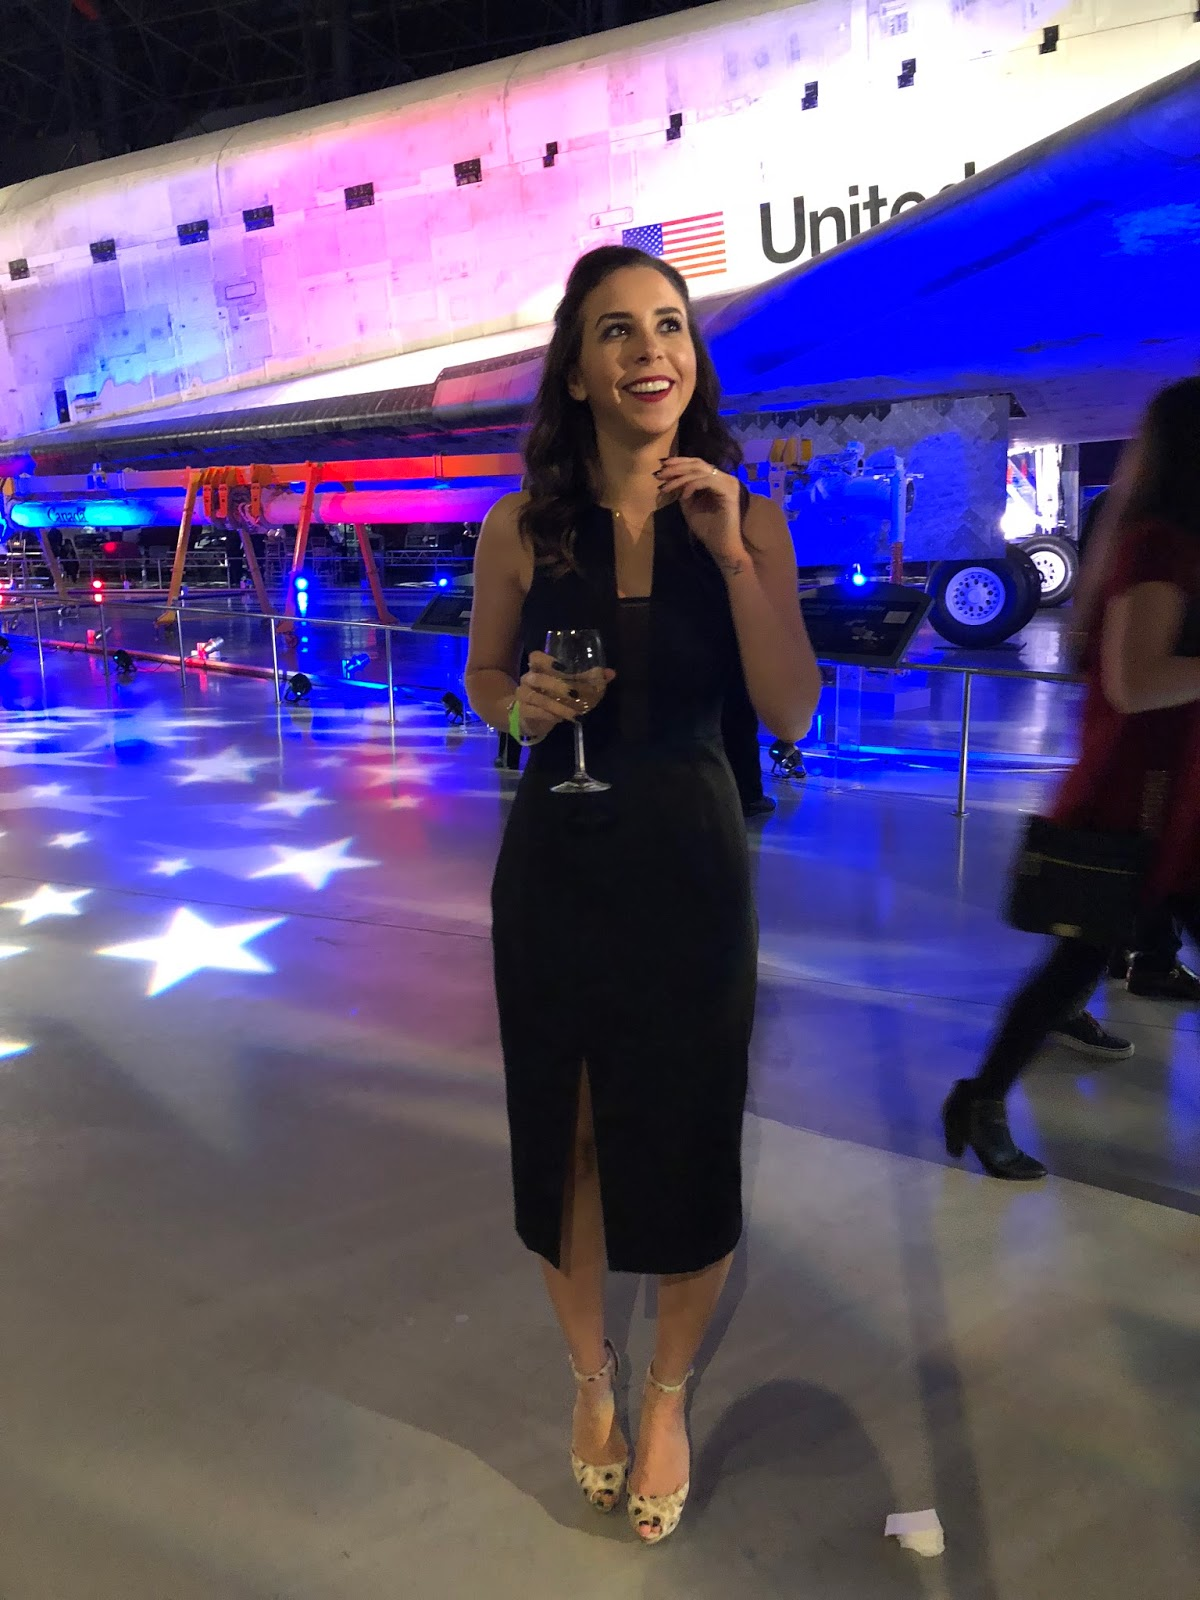 air-space-museum-finderskeepers-holiday-party-dc-blogger-avizastyle